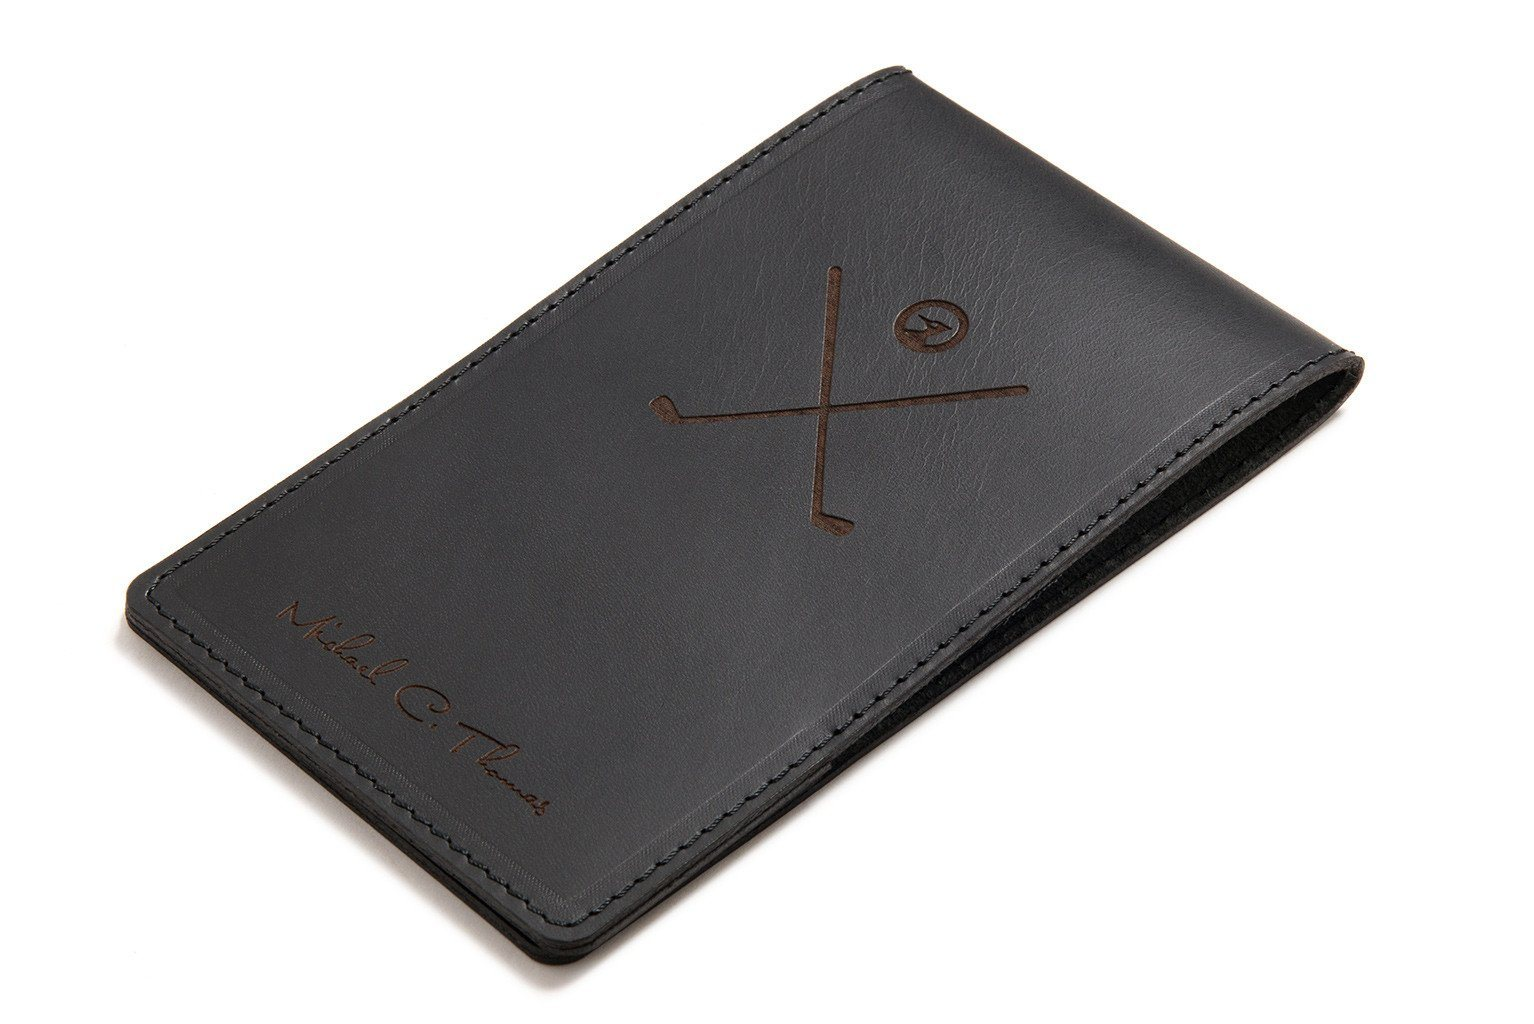 Cookbook Black Cover : Black personalised leather yardage book cover carveon